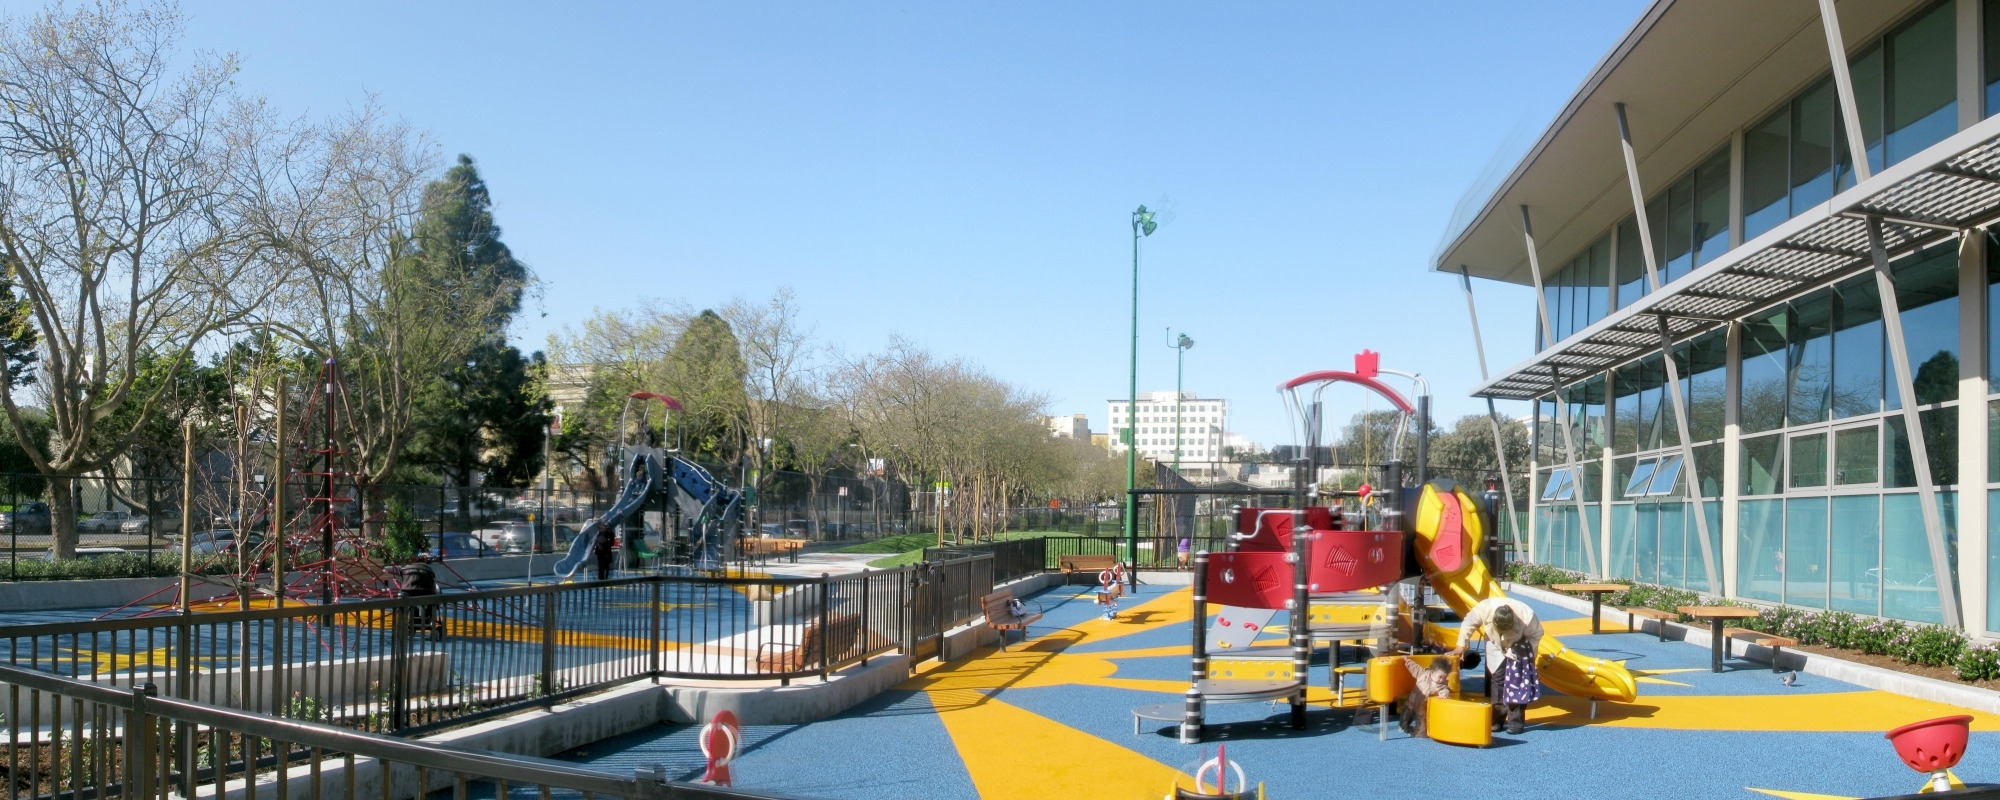 Hamilton Recreation Center & Playground Renovation